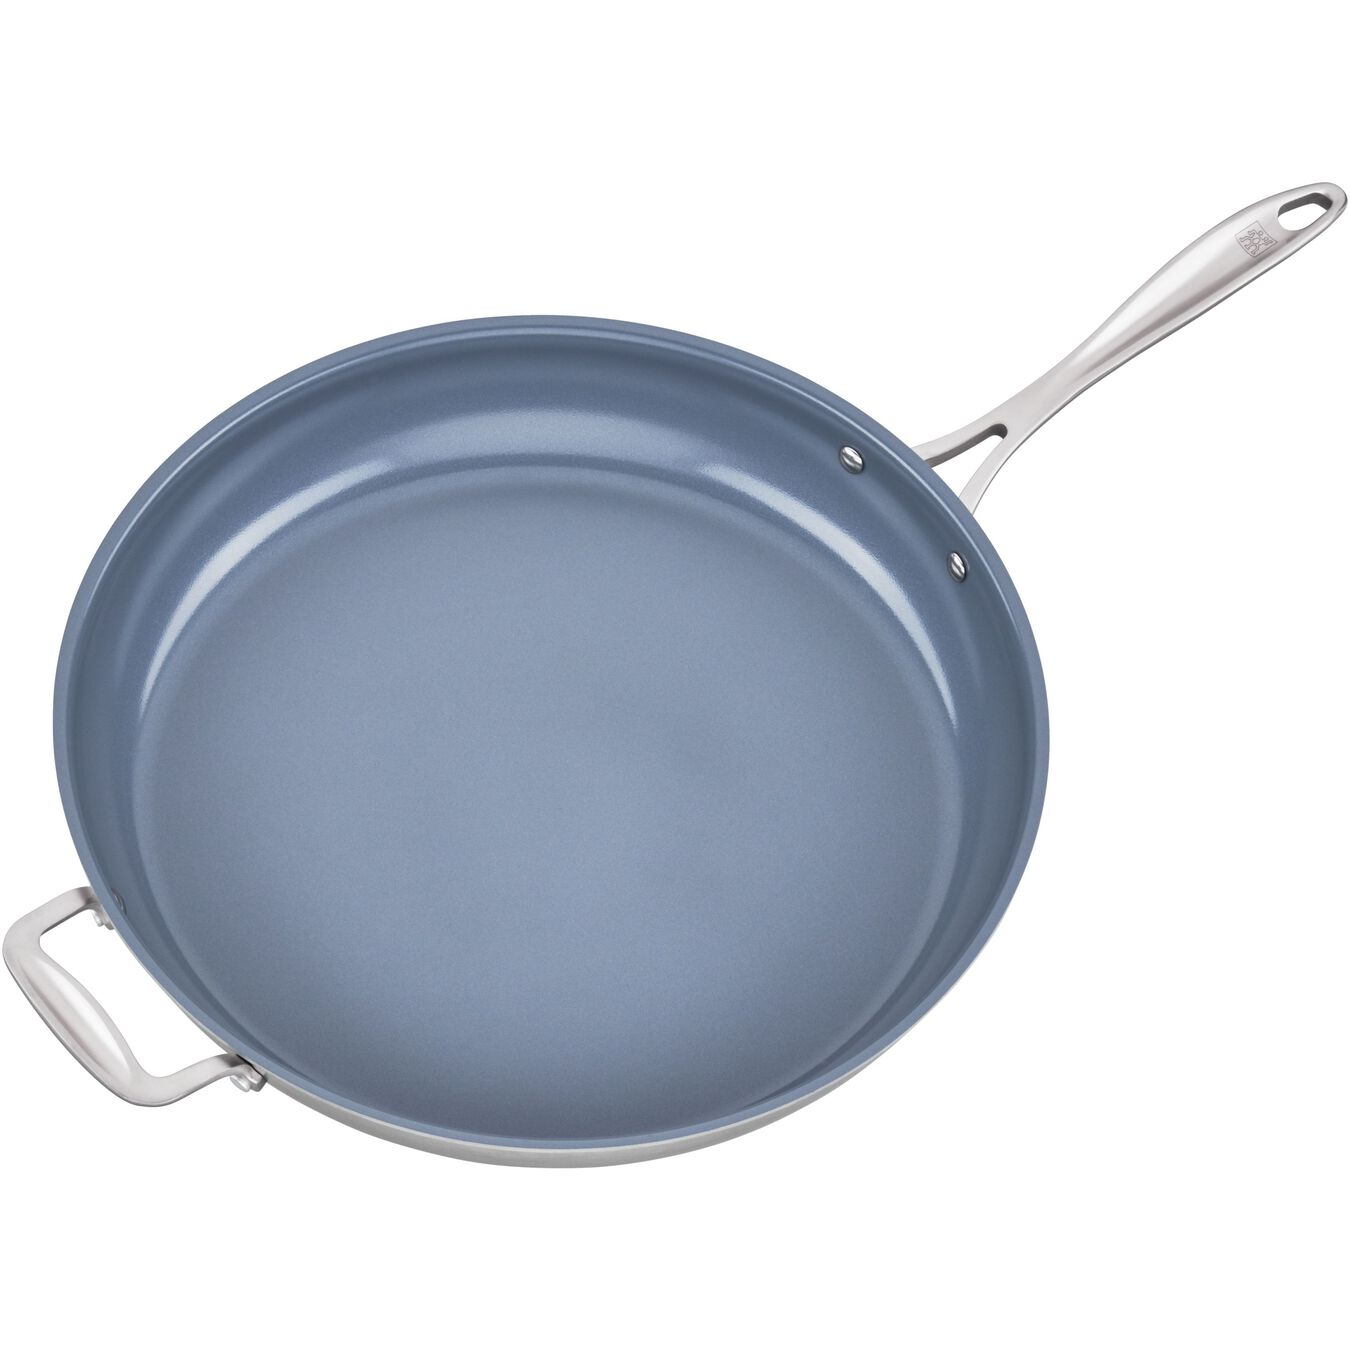 14-inch, 18/10 Stainless Steel, Non-stick, Frying pan,,large 4